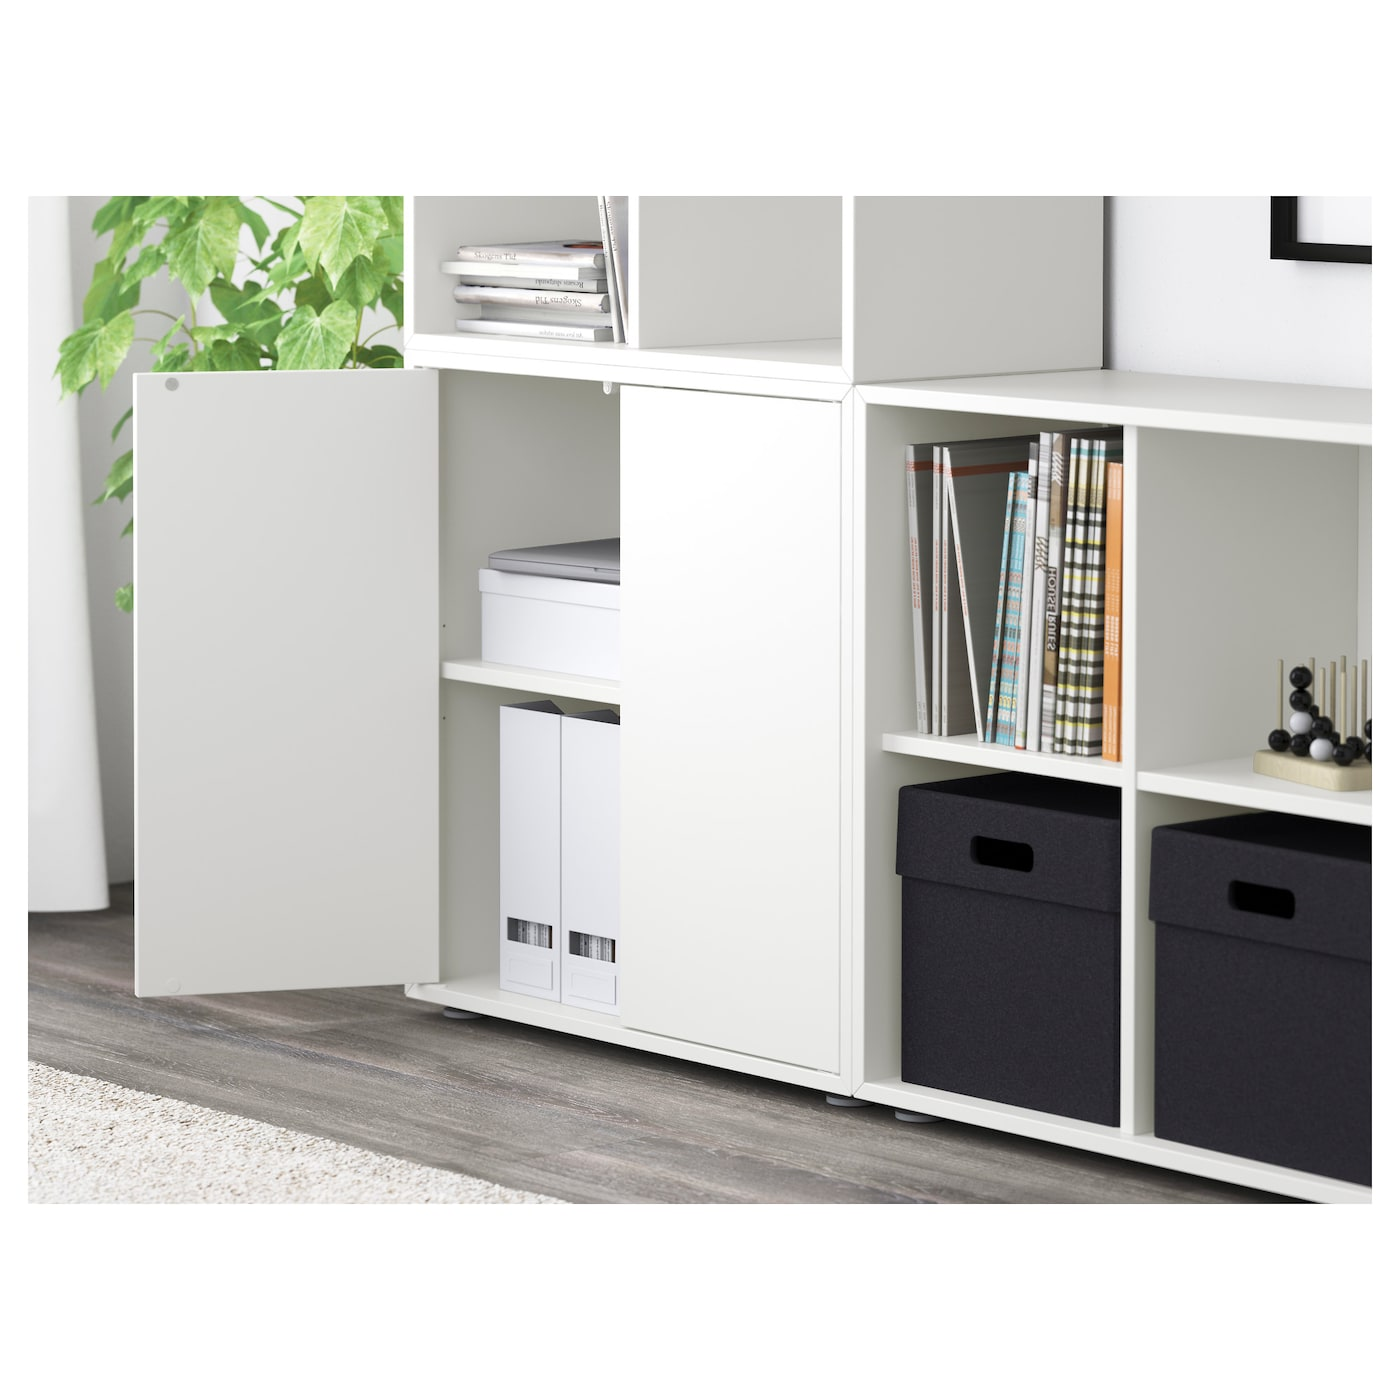 eket cabinet combination with feet white 210 x 35 x 142 cm ikea. Black Bedroom Furniture Sets. Home Design Ideas